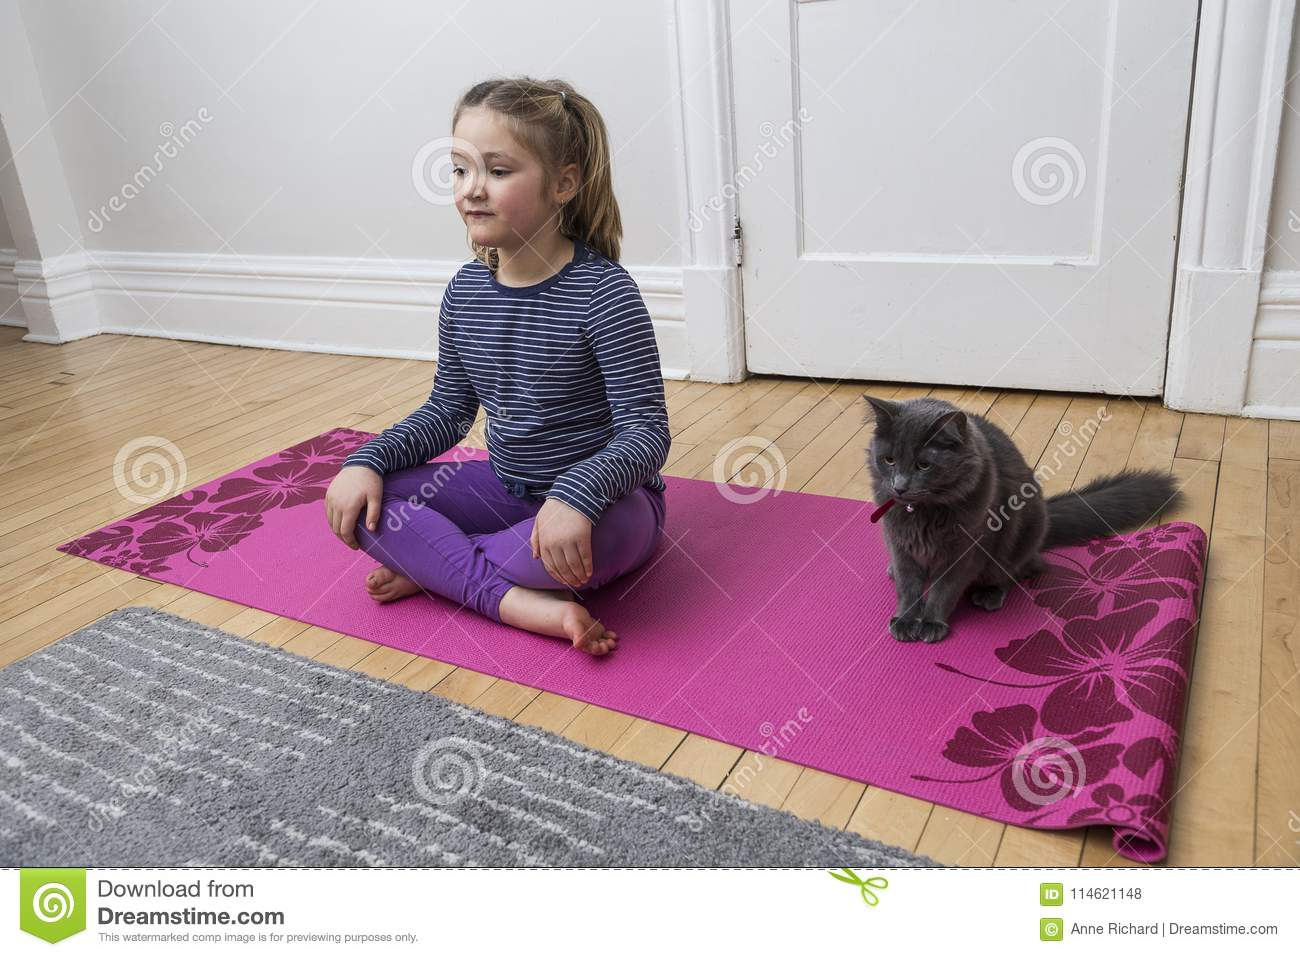 Little girl doing the yoga crossed-legged sitting pose with grey cat